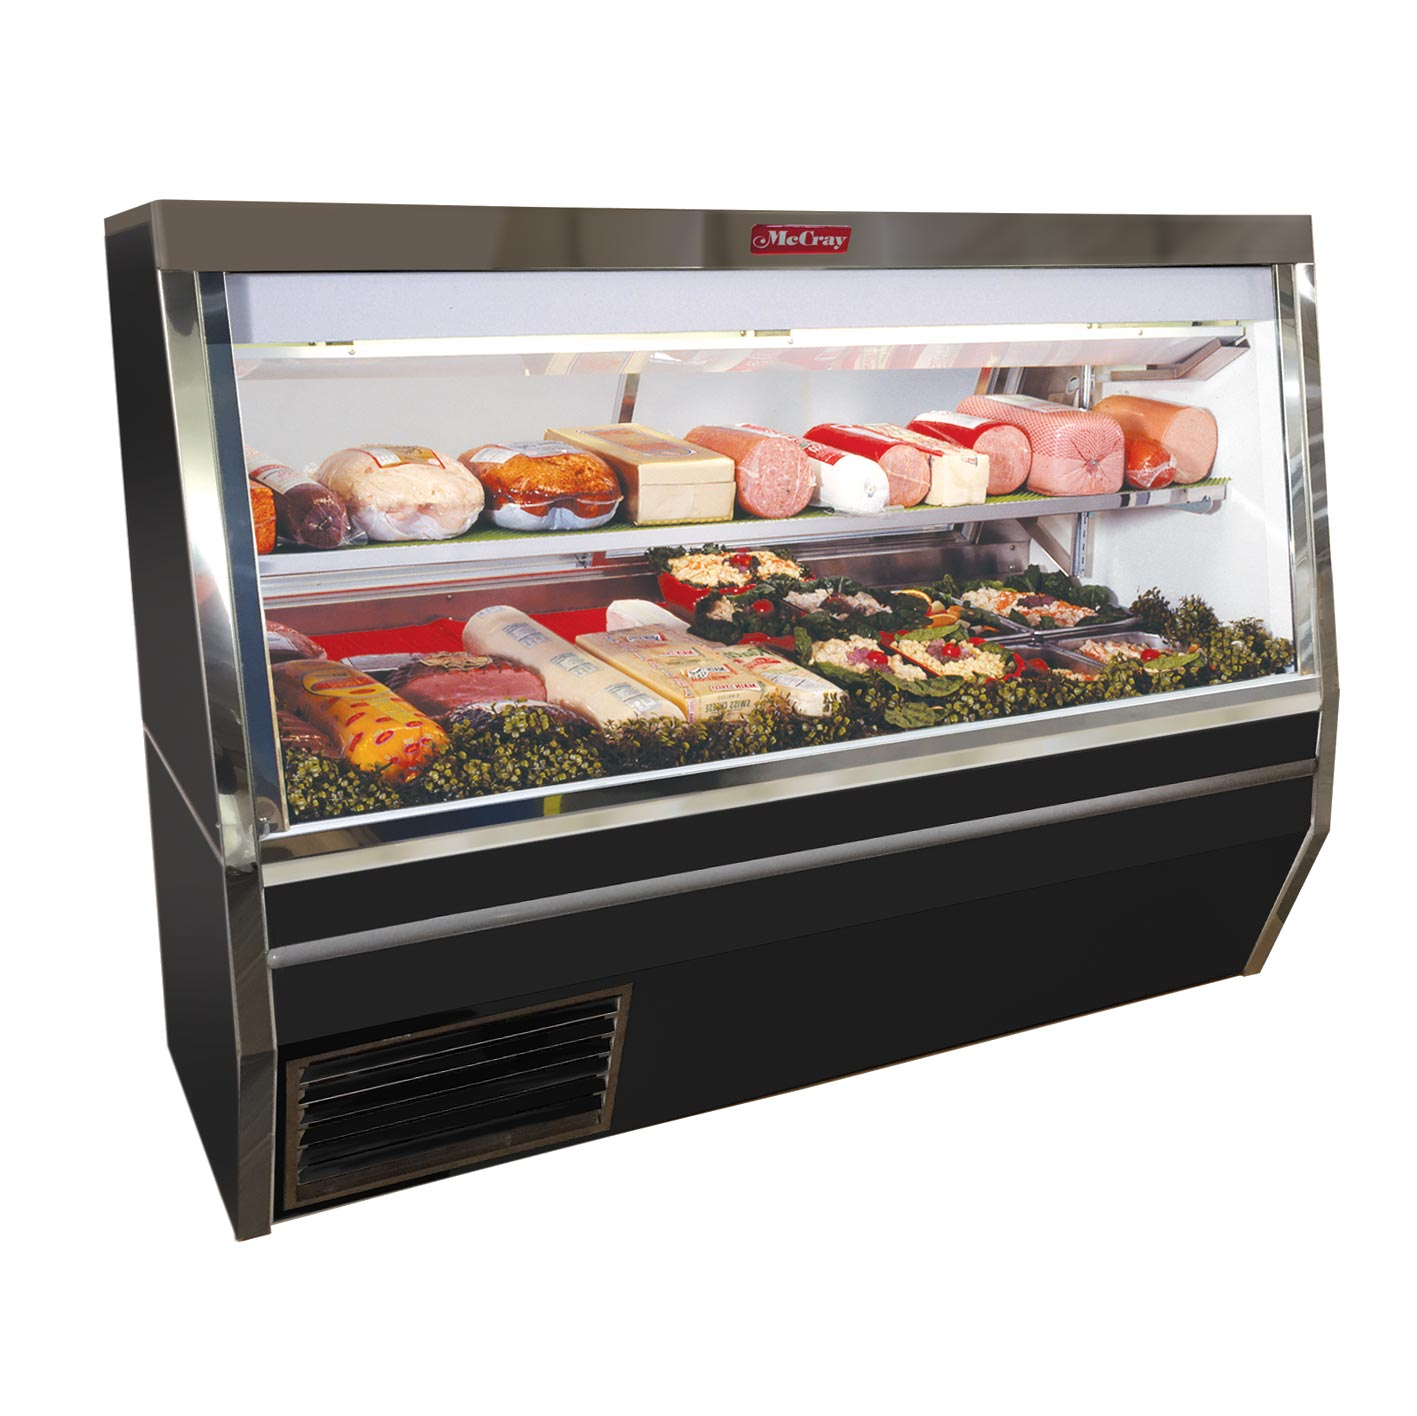 Howard-McCray SC-CDS34N-8-BE-LED display case, refrigerated deli